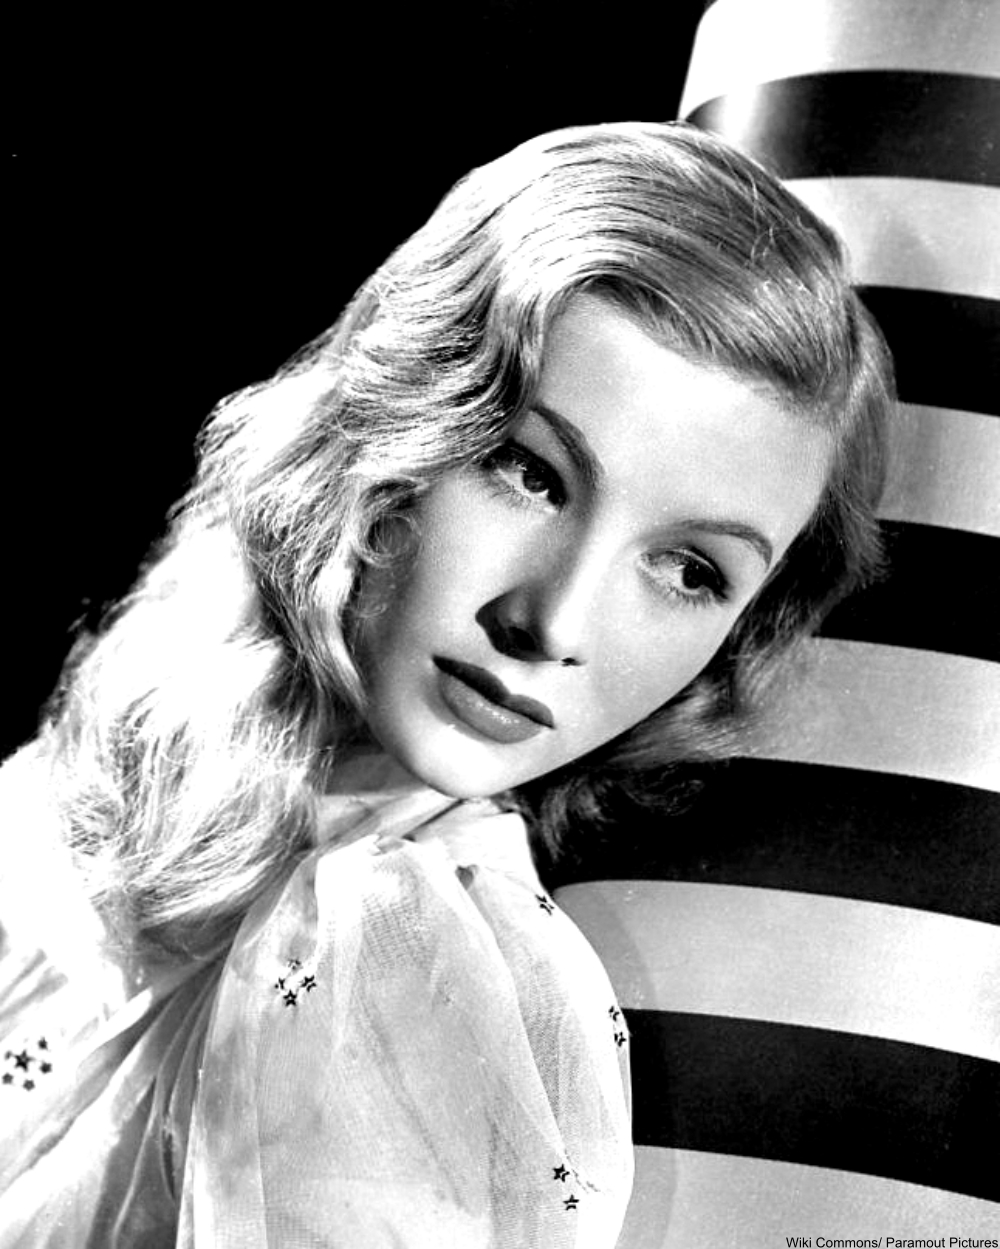 Veronica Lake 1940s publicity photo